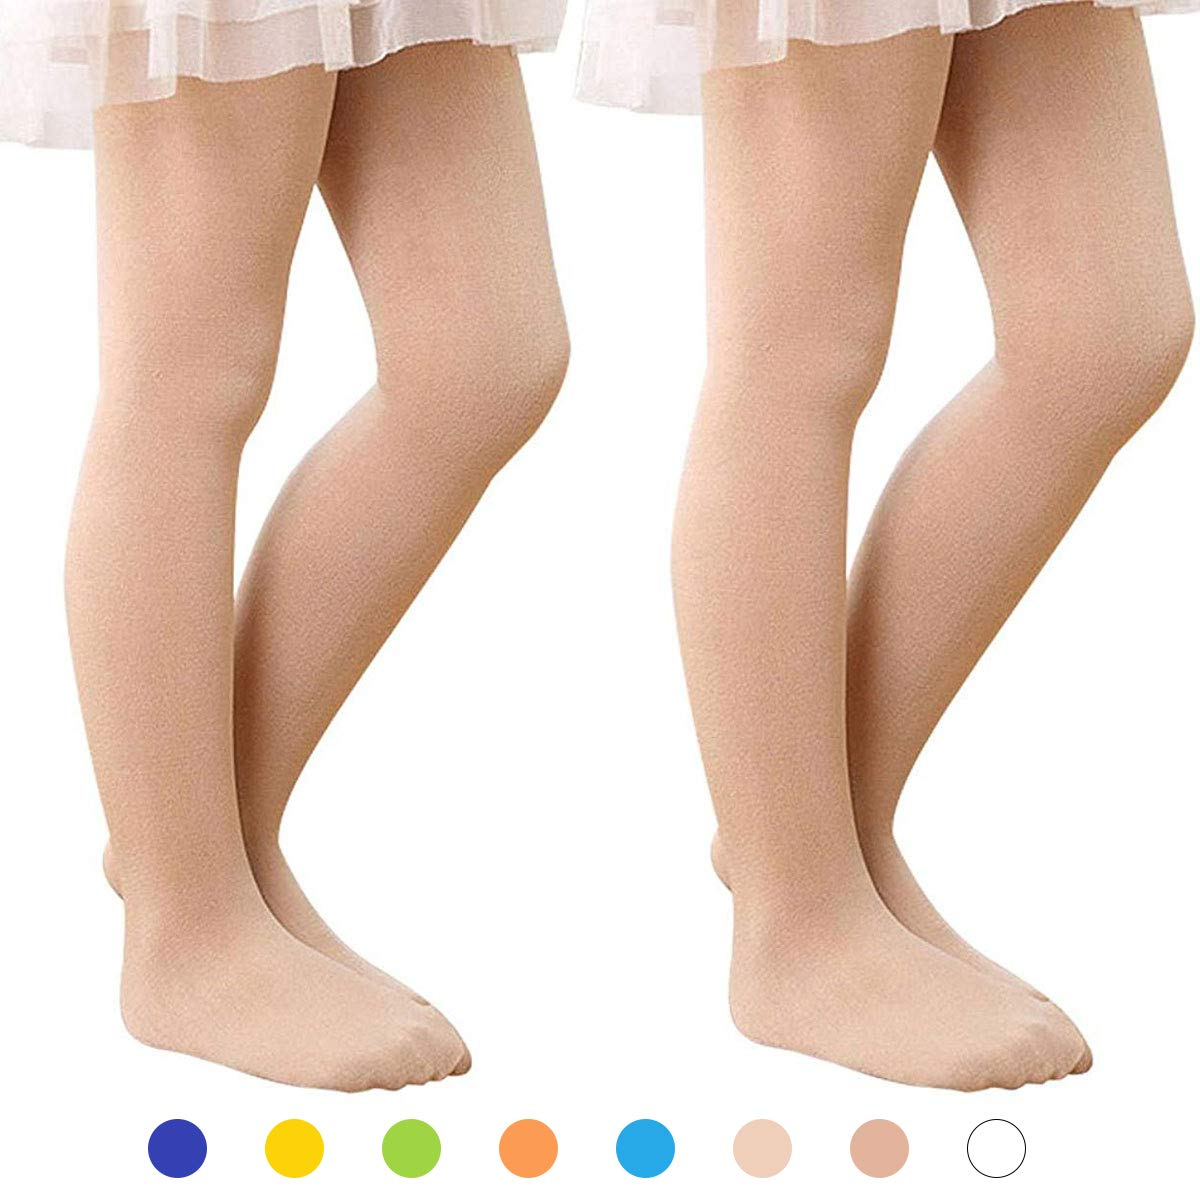 Zando Girl's Ultra Soft Pro Ballet Dance Tight Toddler Kids Footed Leggings Elastic Opaque Pants Tight 2 Pack Skin Color L by Zando (Image #6)